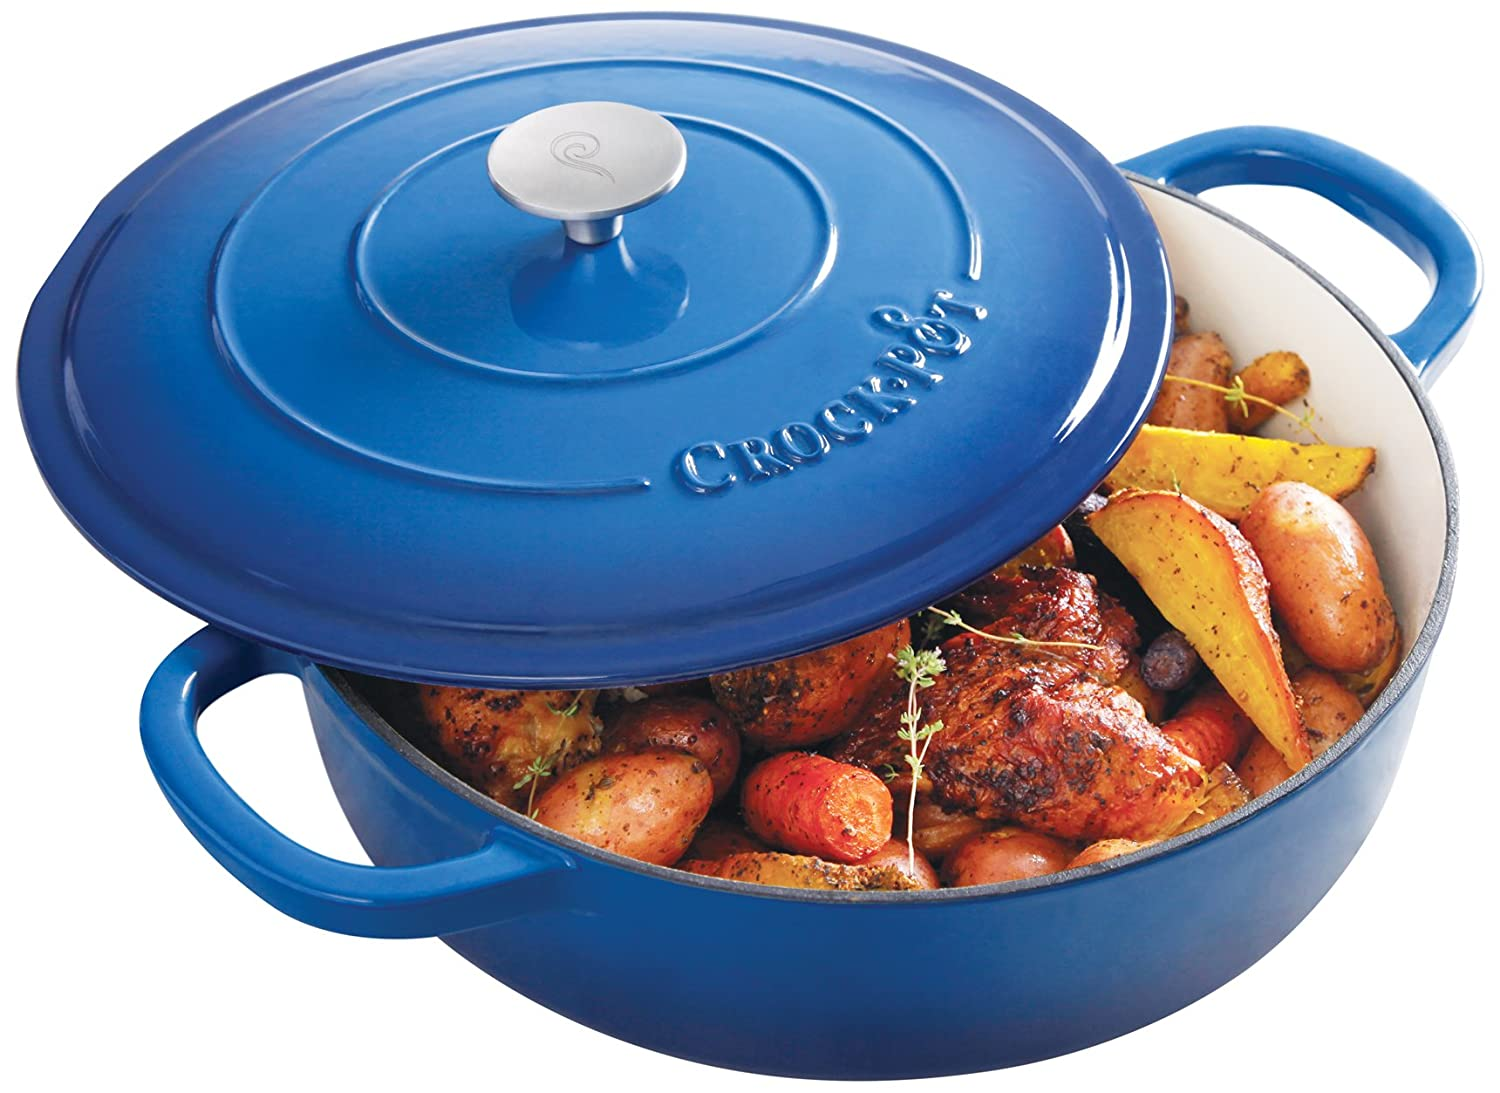 Crock Pot 111999.02 Artisan 5 Quart Enameled Cast Iron Braiser Pan, Sapphire Blue